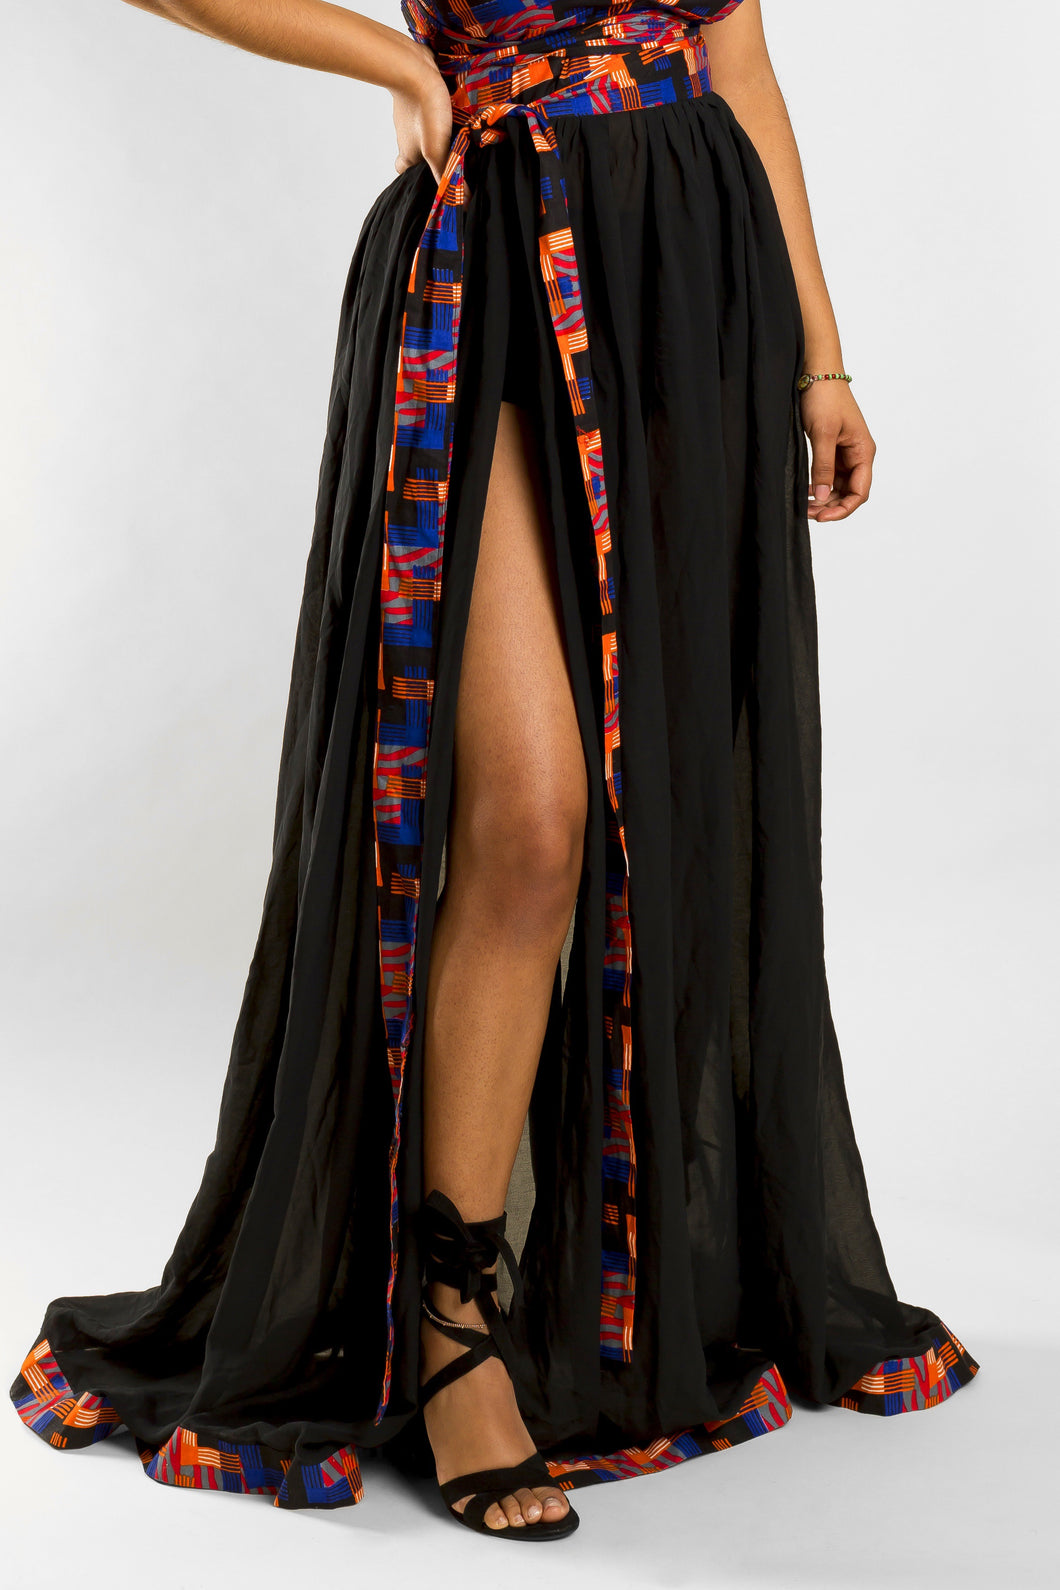 VV Black Chiffon Tie Cover Up w/ Miami Blue